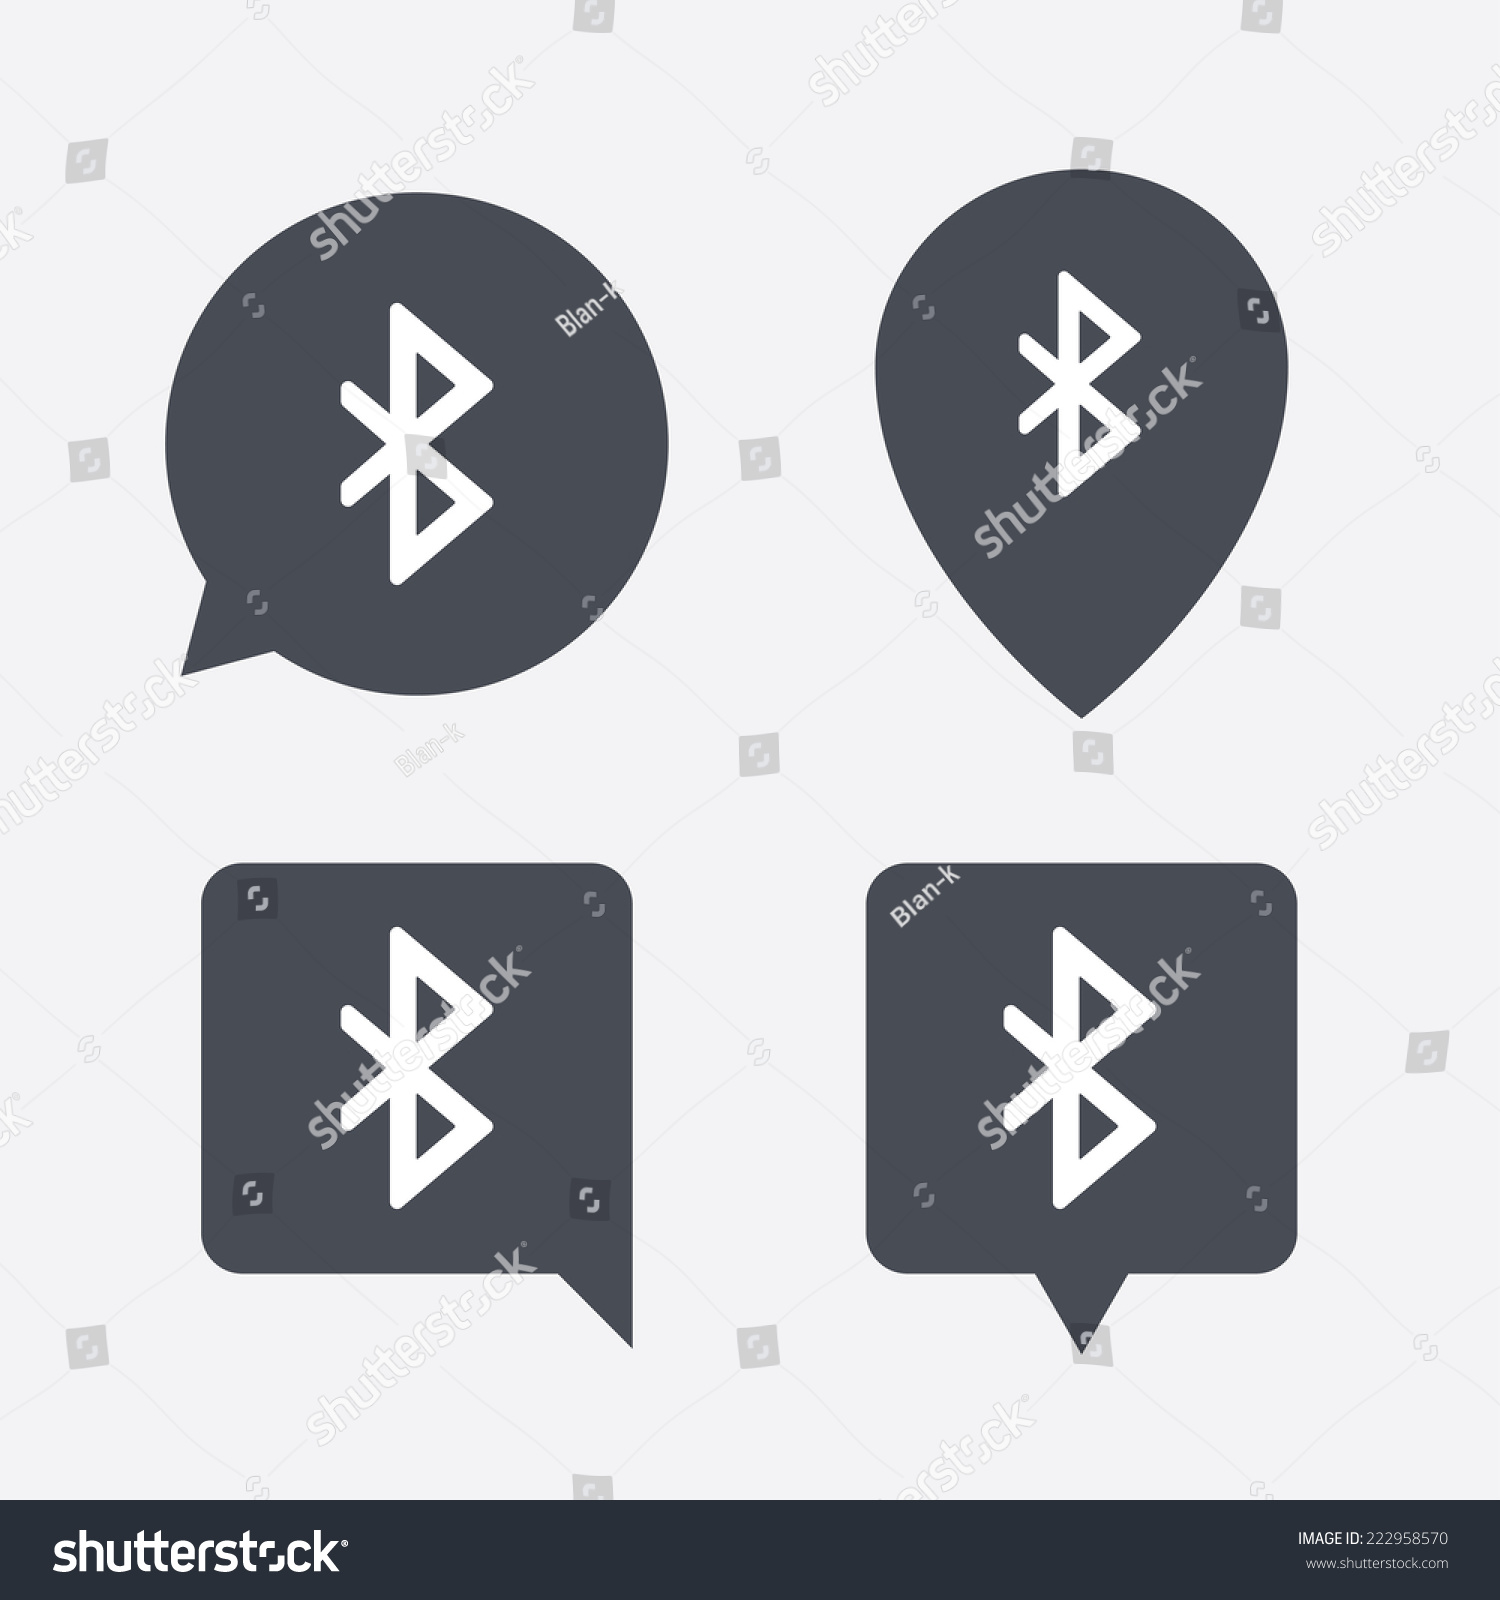 Bluetooth Sign Icon Mobile Network Symbol Stock Illustration